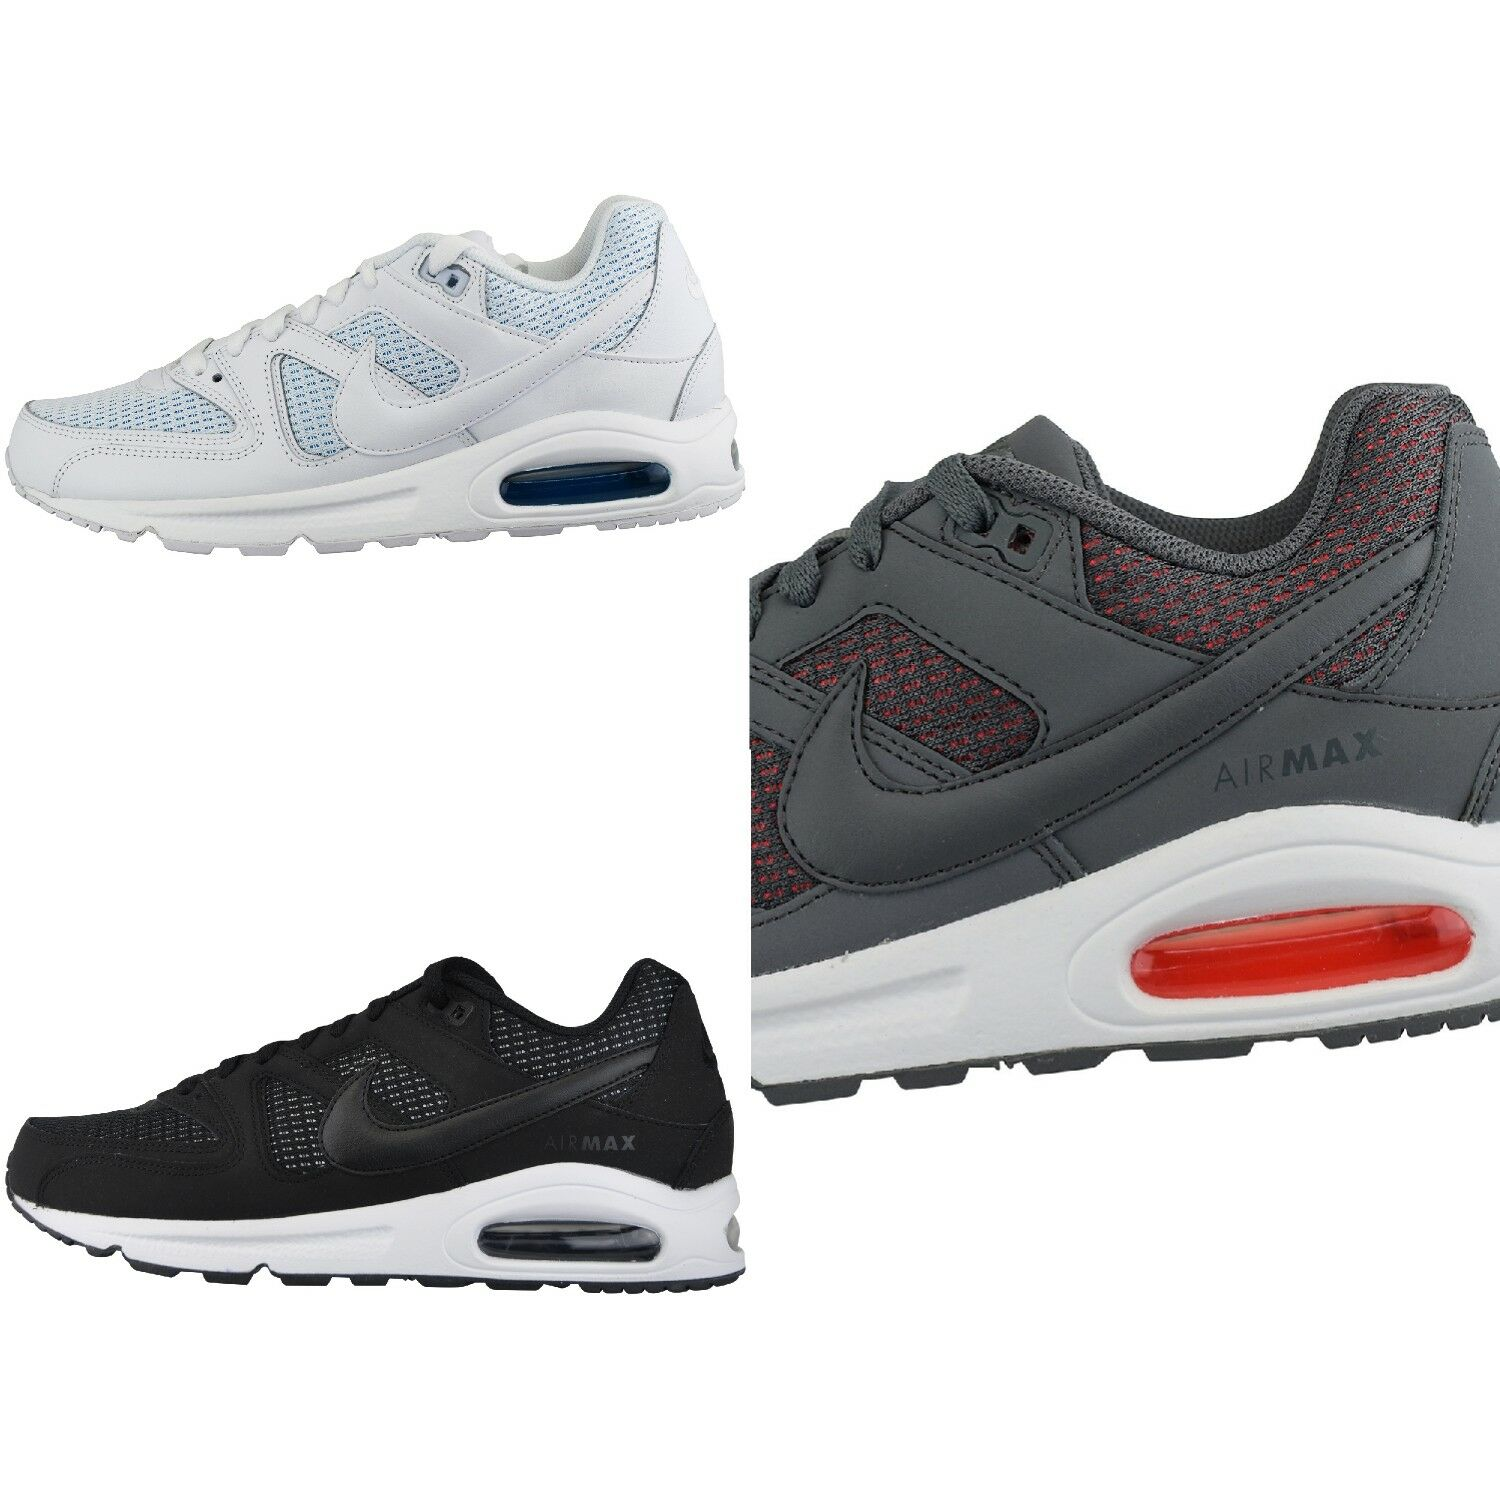 Air Max Command Ladies Shoe Trainers Leather New shoes for men and women, limited time discount